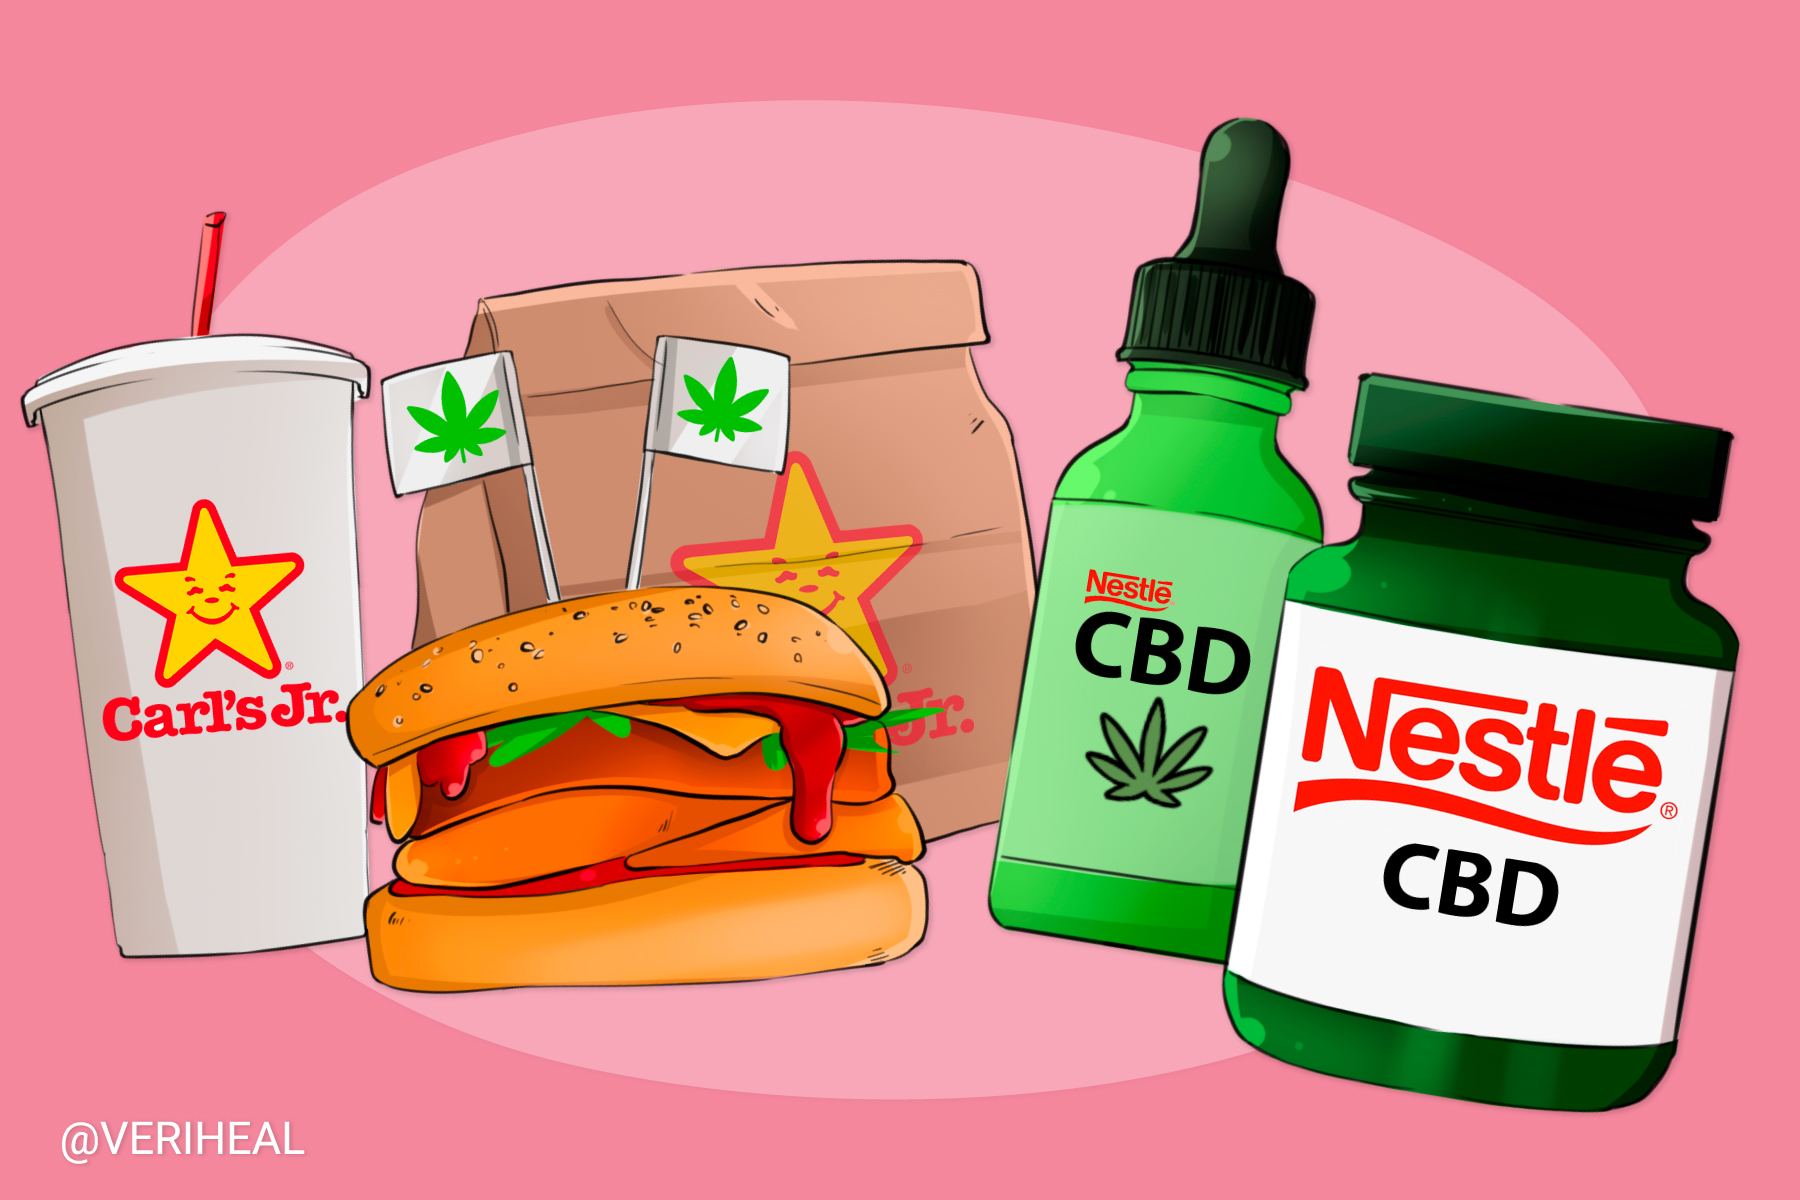 Nestlé and Other Big Food Conglomerates Enter the Cannabis Market